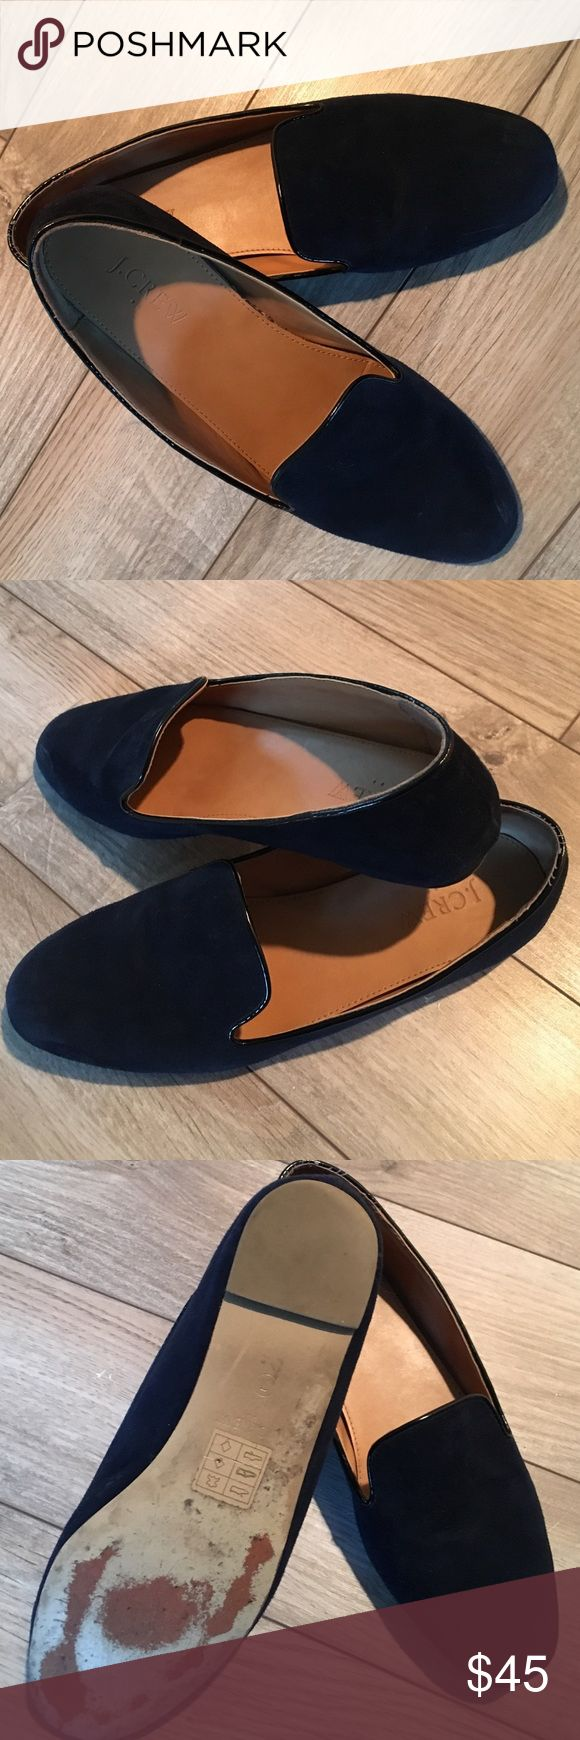 J. Crew Darby Suede Loafers Dark blue suede loafers, worn a few times. Final photo shows a couple of slight scuffs, everything else is perfect. Very comfortable, dress up or down. J. Crew Shoes Flats & Loafers